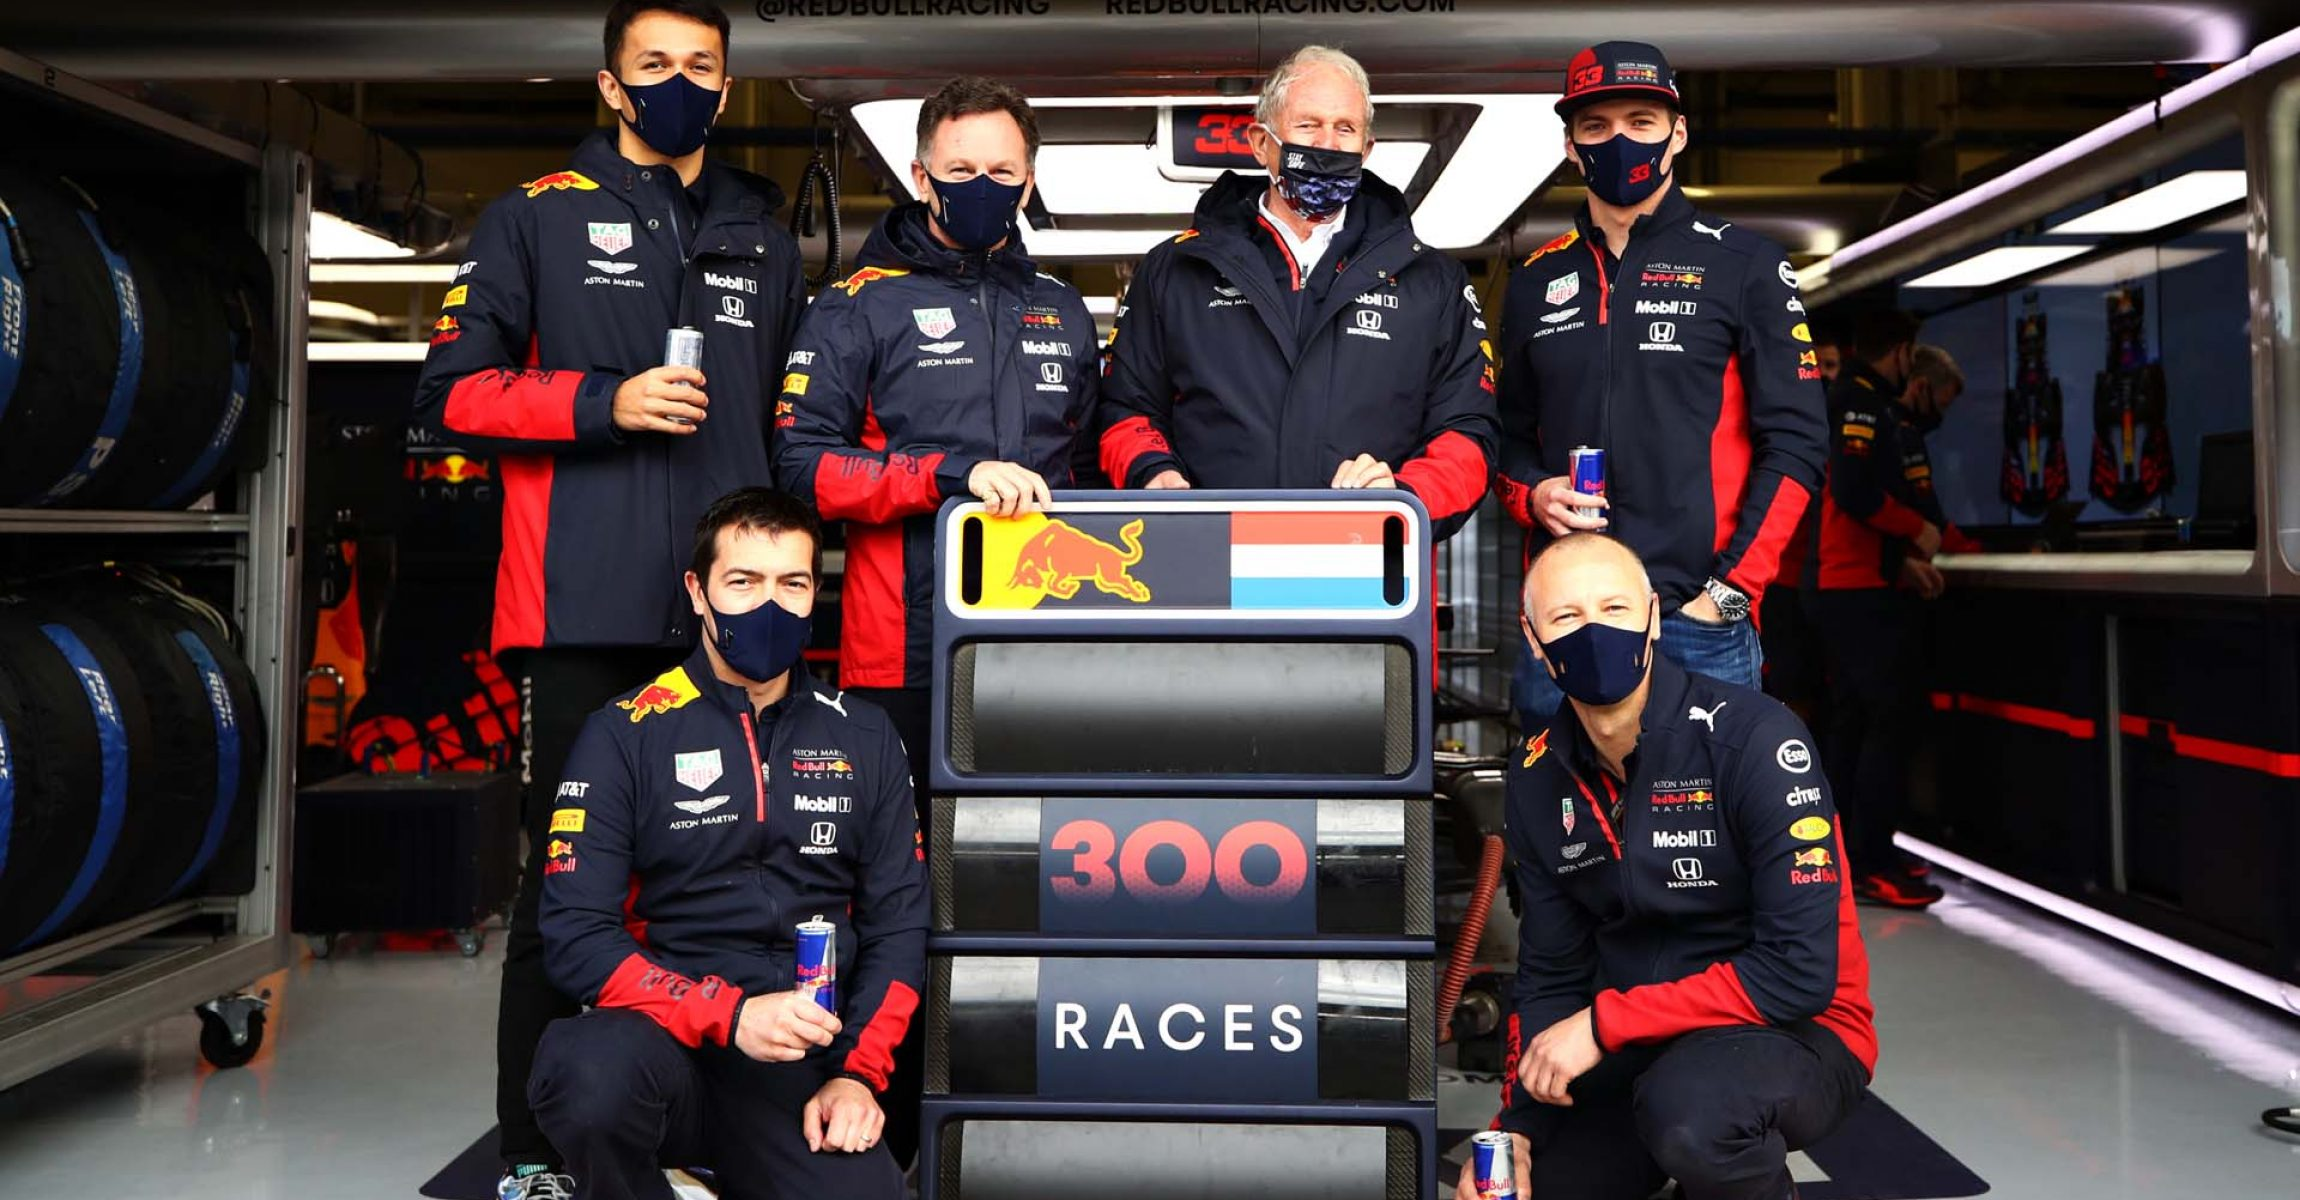 ISTANBUL, TURKEY - NOVEMBER 15: Alexander Albon of Thailand and Red Bull Racing, Red Bull Racing Team Principal Christian Horner, Red Bull Racing Team Consultant Dr Helmut Marko, Max Verstappen of Netherlands and Red Bull Racing, Ole Schack and Phil Turner of Red Bull Racing pose for a photo with a pitboard celebrating the teams 300th race before the F1 Grand Prix of Turkey at Intercity Istanbul Park on November 15, 2020 in Istanbul, Turkey. (Photo by Bryn Lennon/Getty Images)